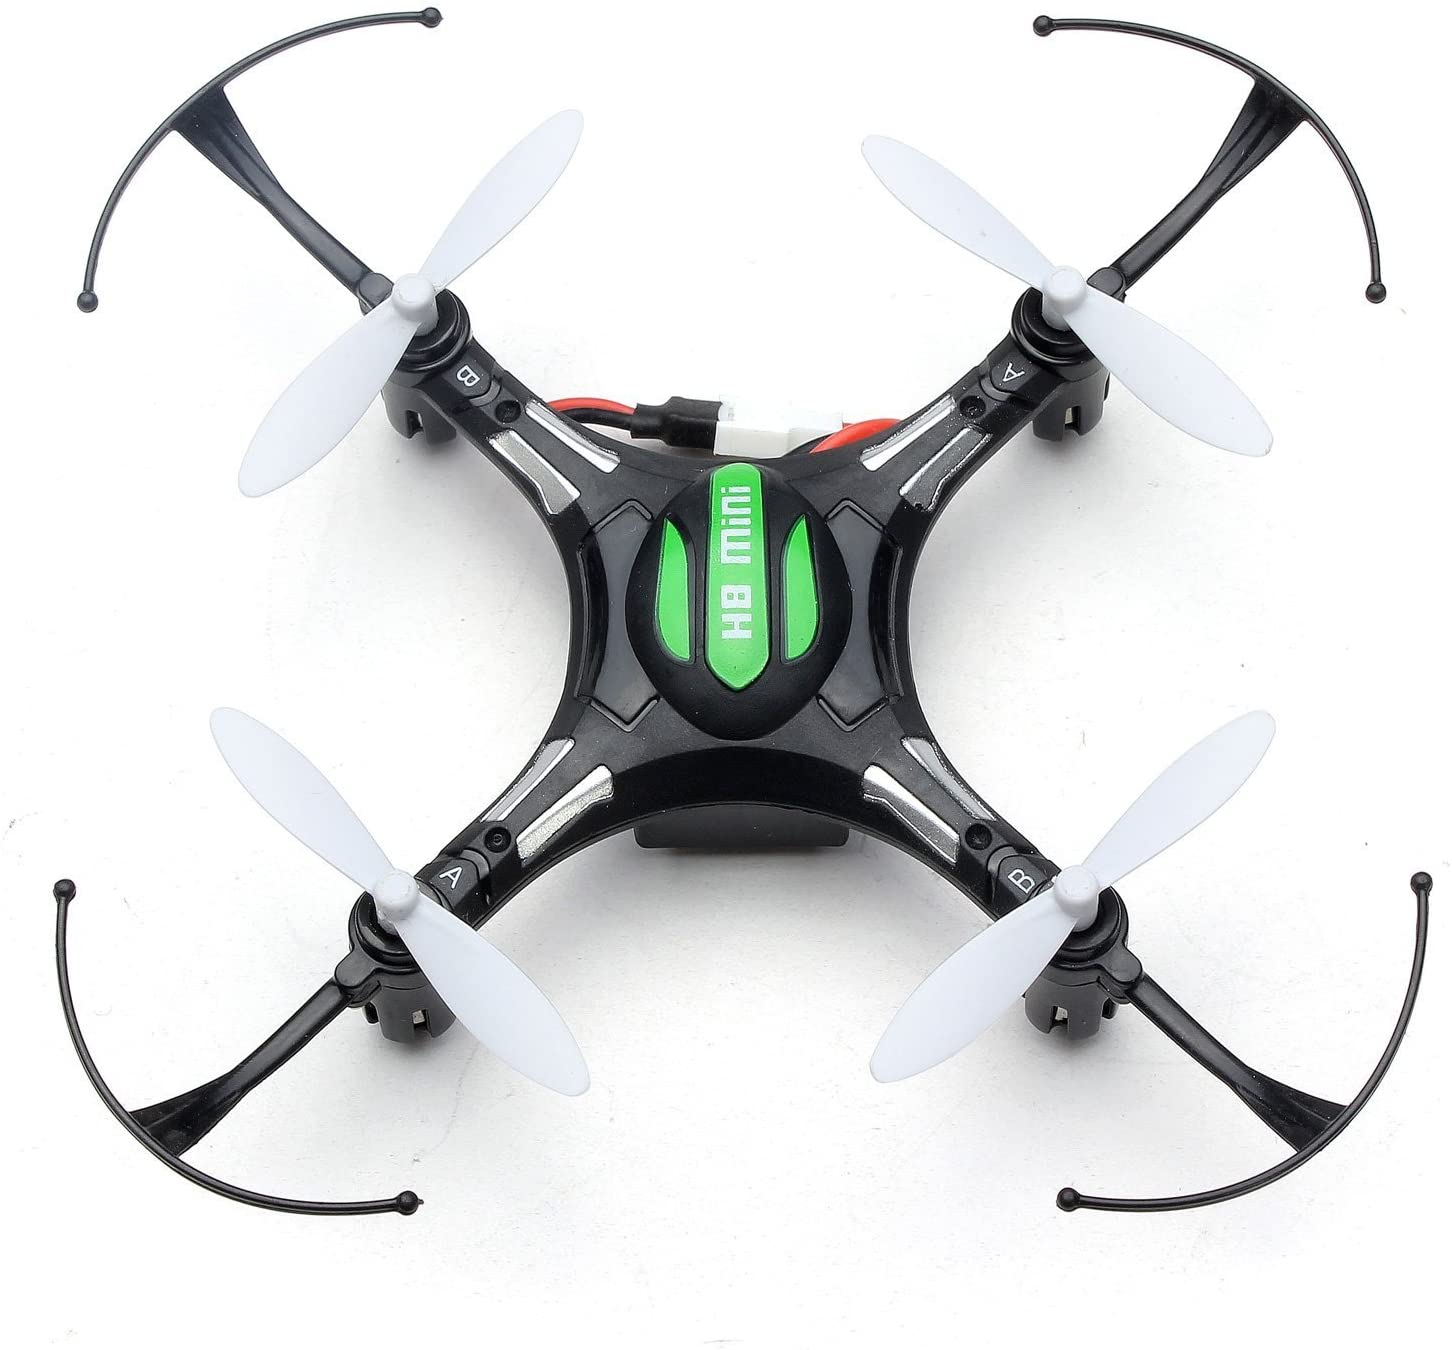 JJRC H8 Mini 4CH 6-Axis Gyro RC Quadcopter RTF Mini Drone Headless Mode 2.4G - Black